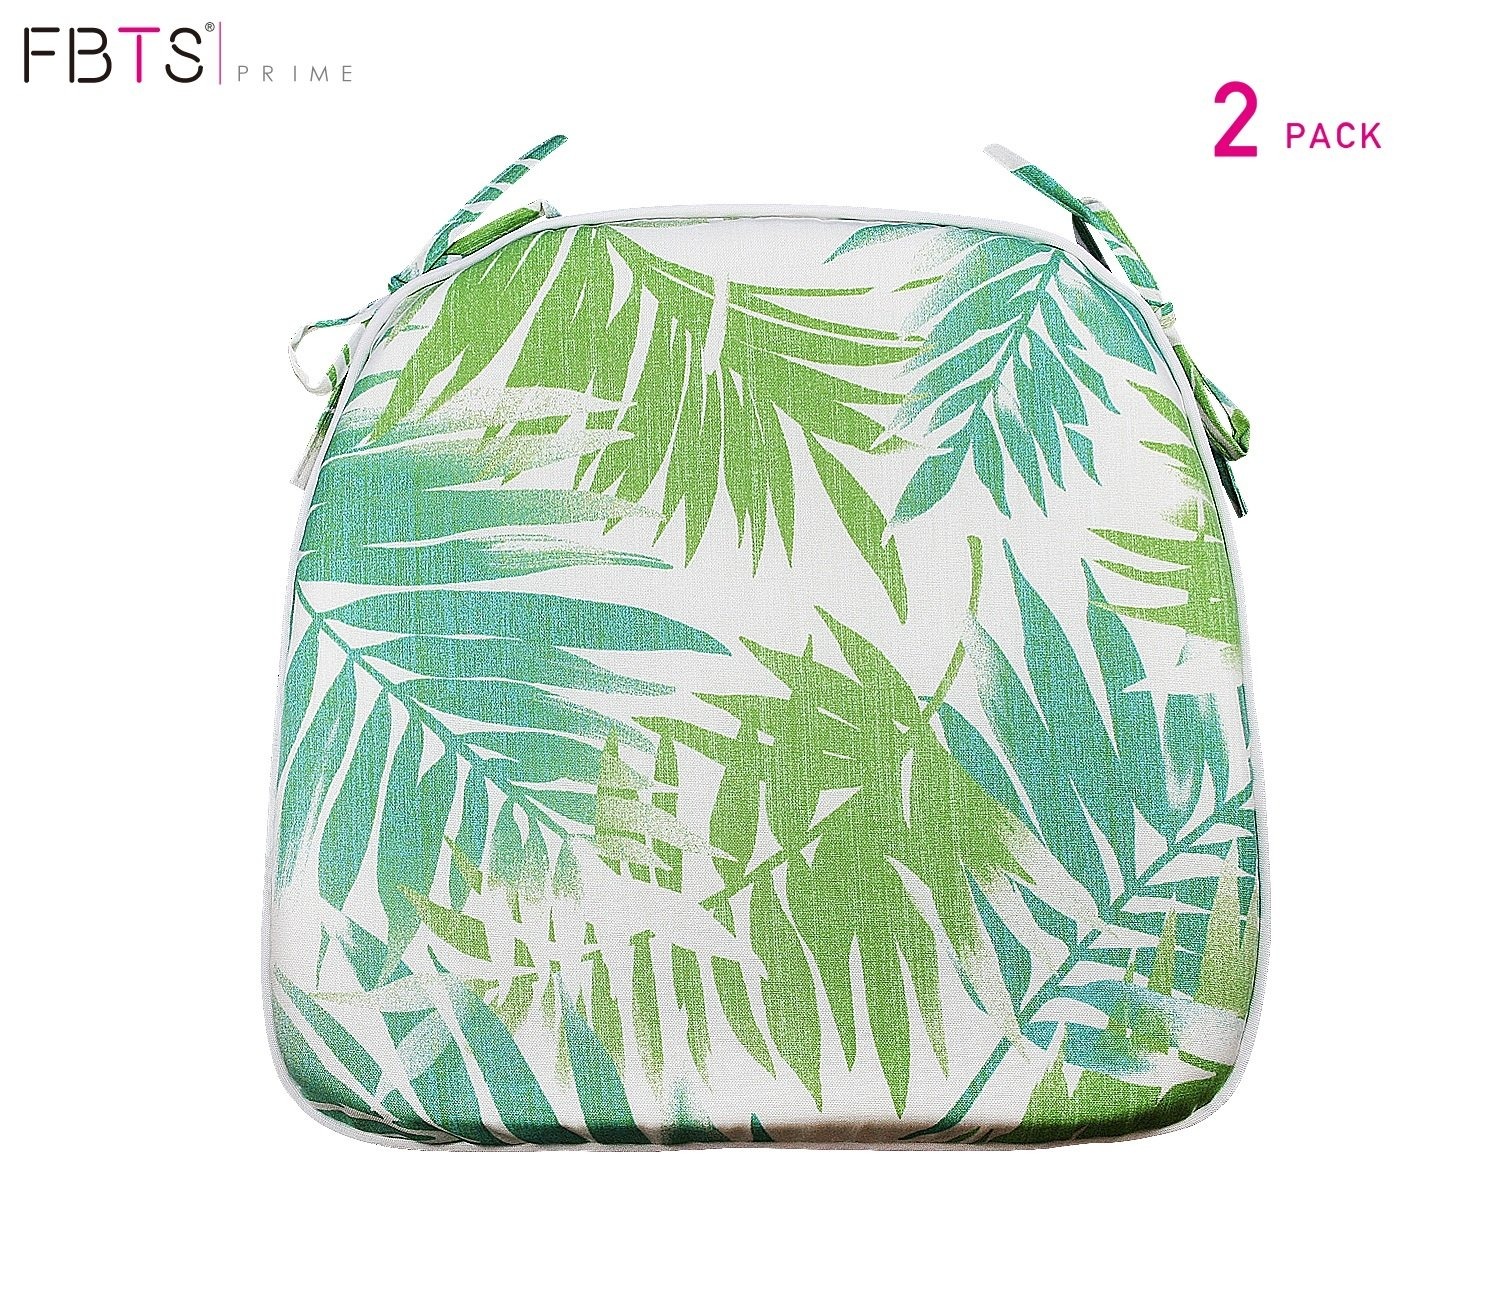 FBTS Prime Outdoor Chair Cushions (Set of 2) 16x17 inches Patio Seat Cushions Green Leaf Square Chair Pads for Outdoor Patio Furniture Garden Home Office